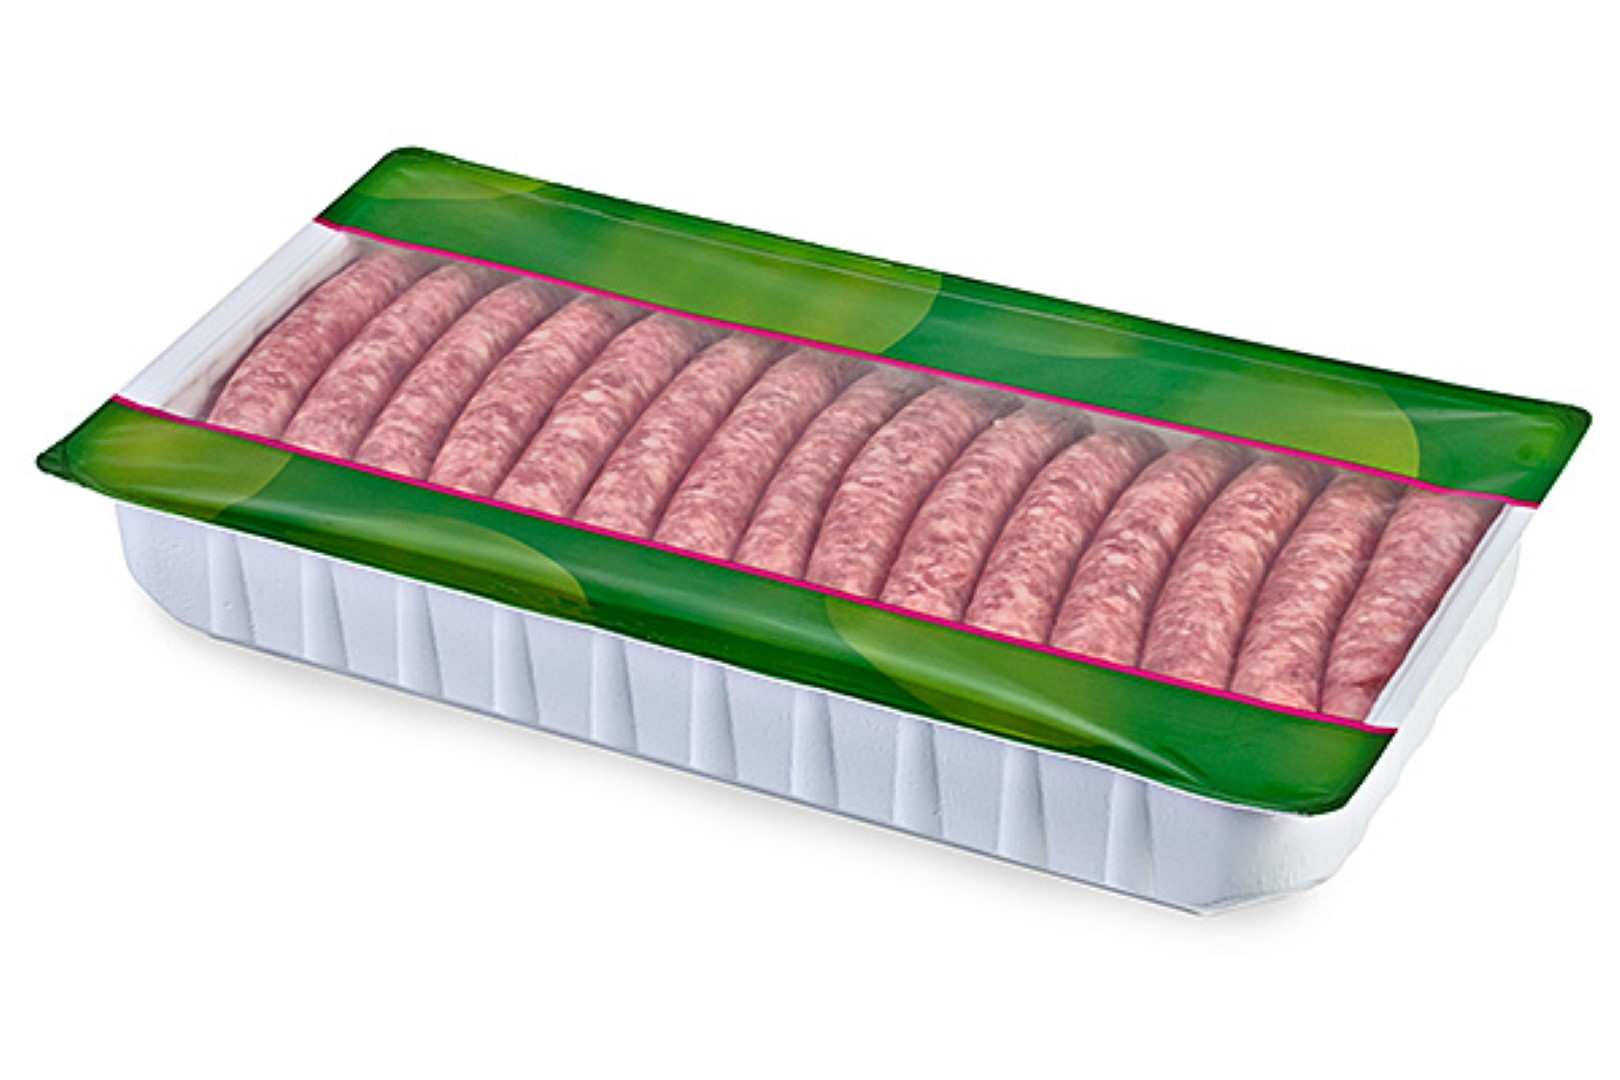 Processed meat industry